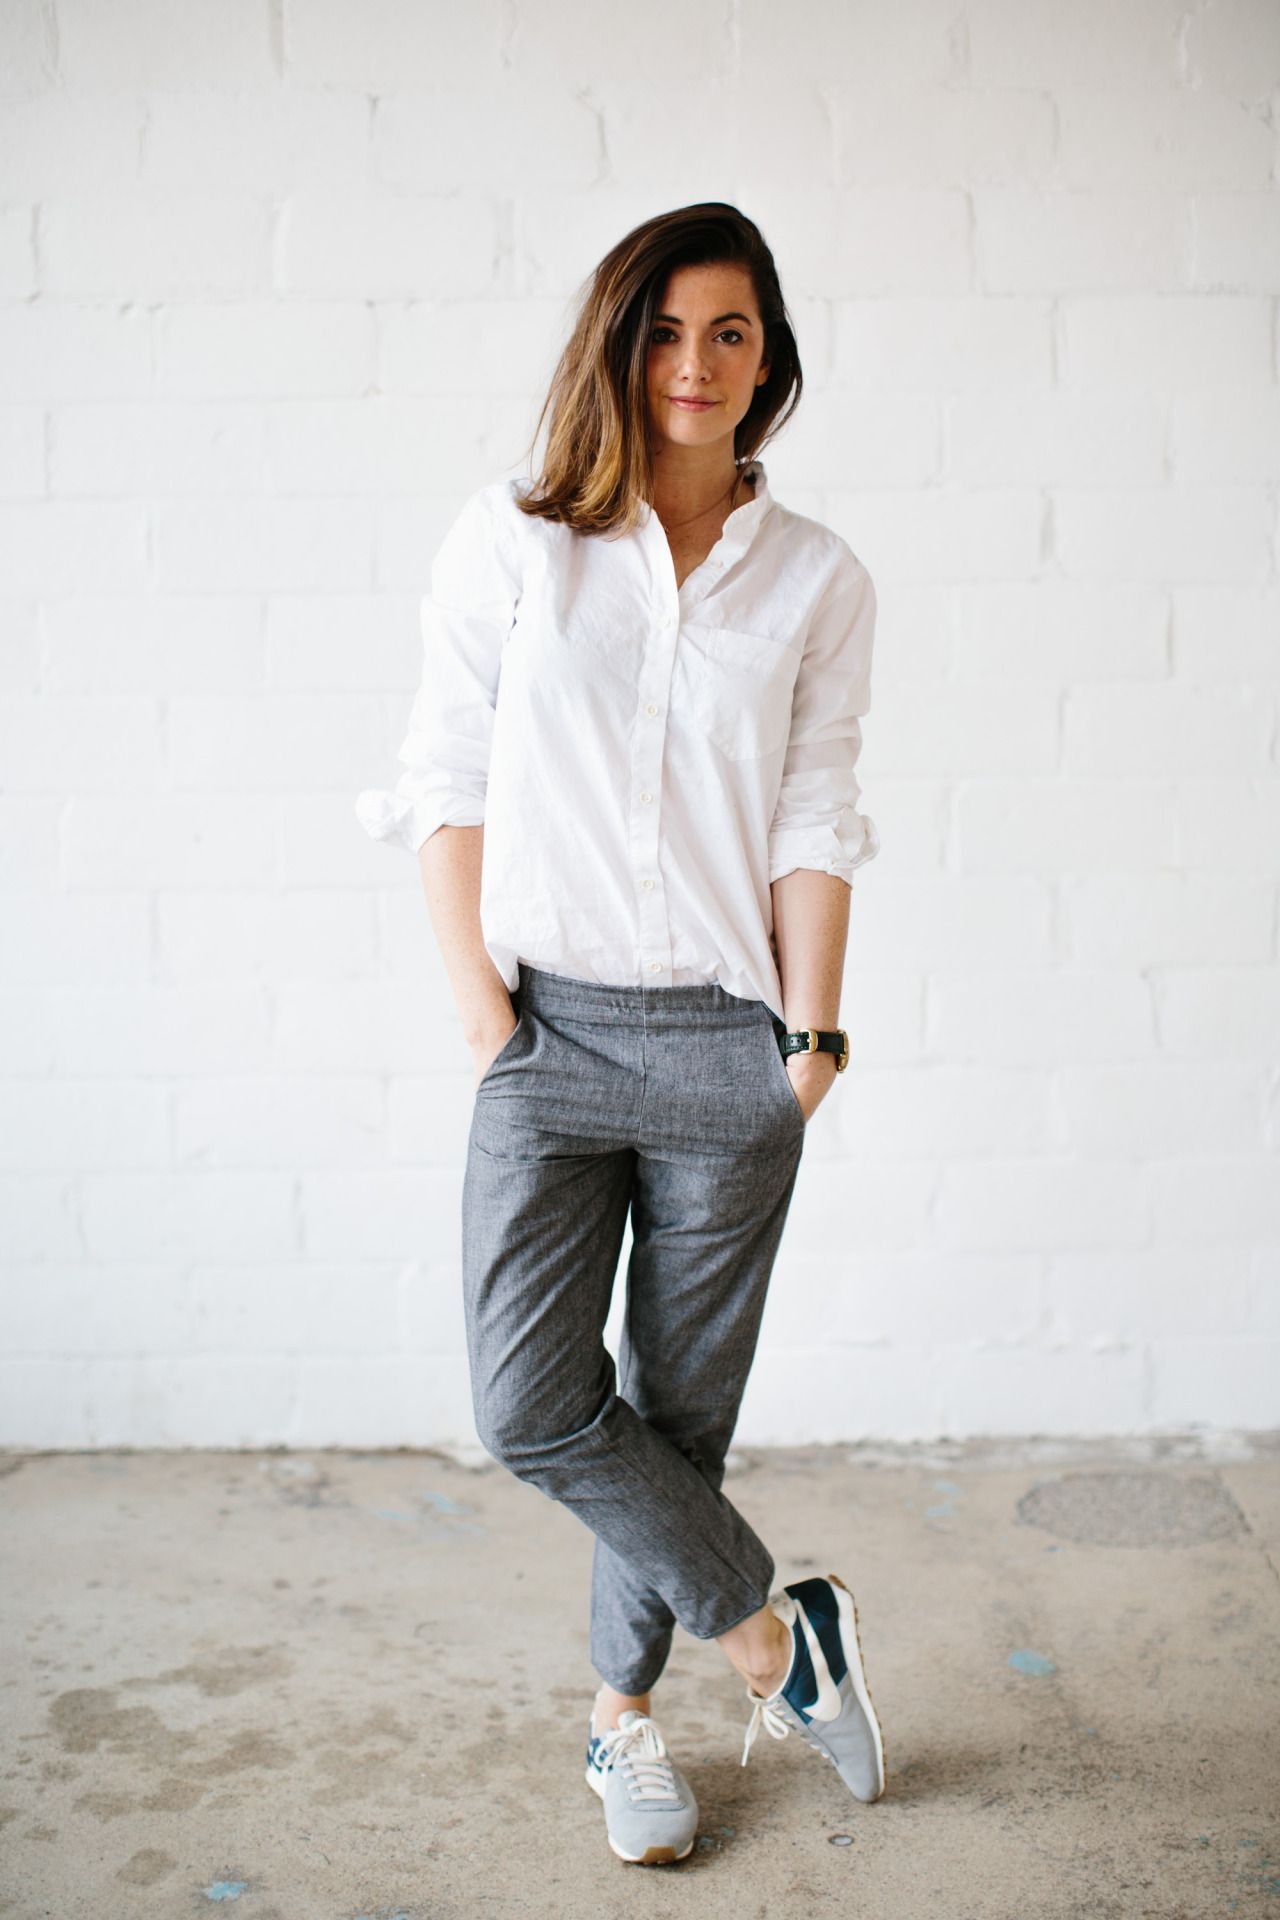 Style blog exclusively for tomboys. : Photo | Androgynous ...